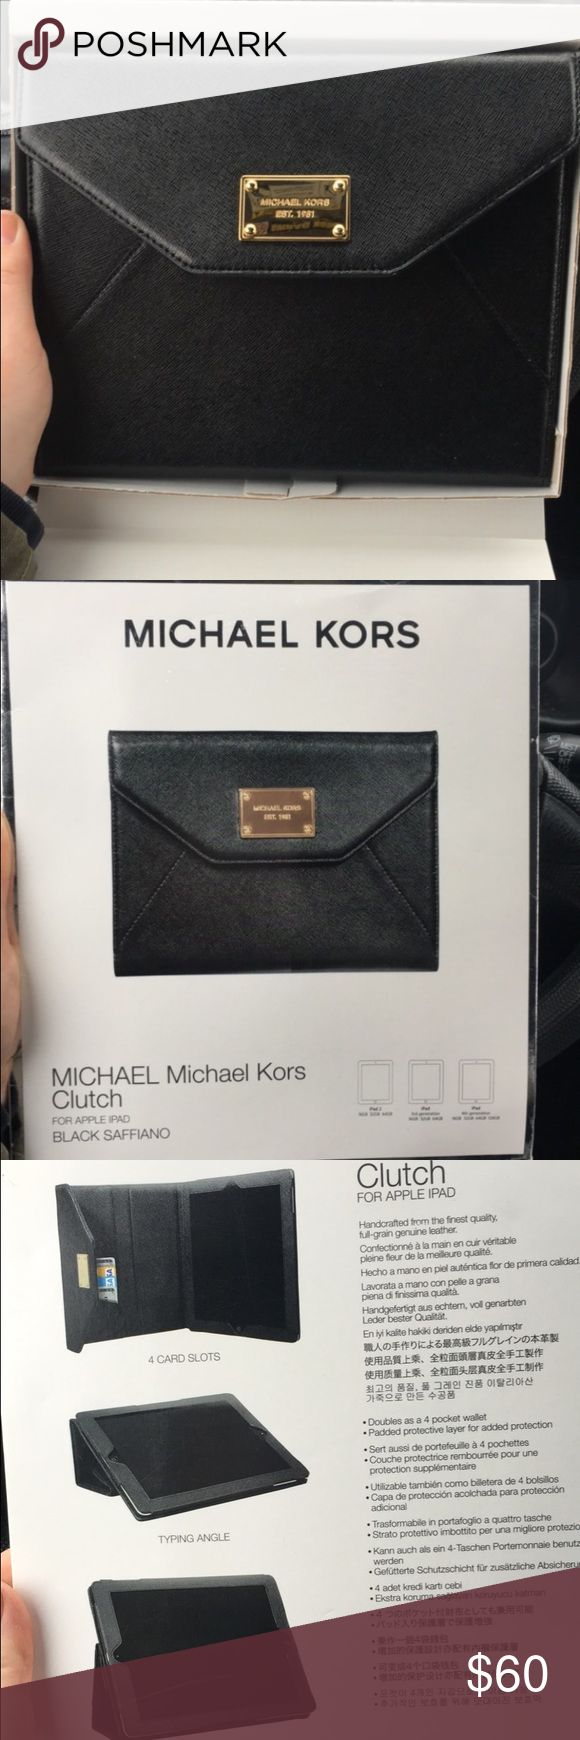 NWT Michael Kors iPad Case New in box! Adorable Michael Kors iPad case. Will fit iPad 2, iPad 3rd generation, and iPad 4th generation. Can tilt and turn screen as shown in picture. Also has credit card slots! Michael Kors Accessories Tablet Cases